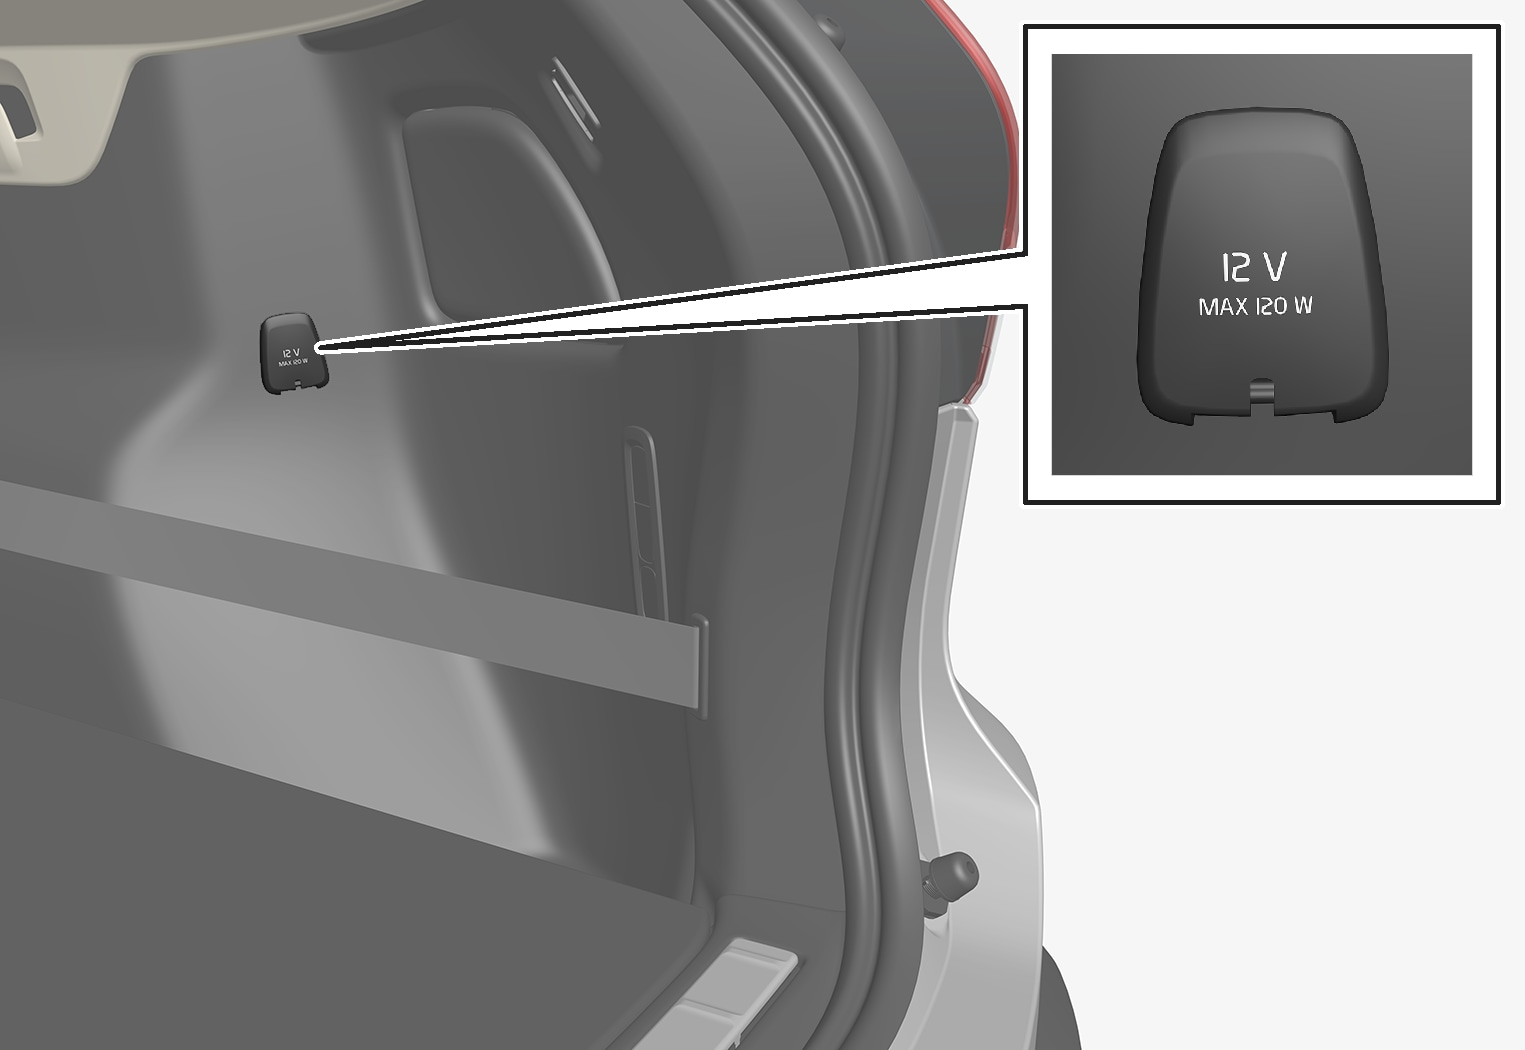 P6-1746-XC40-12 V outlet storage area